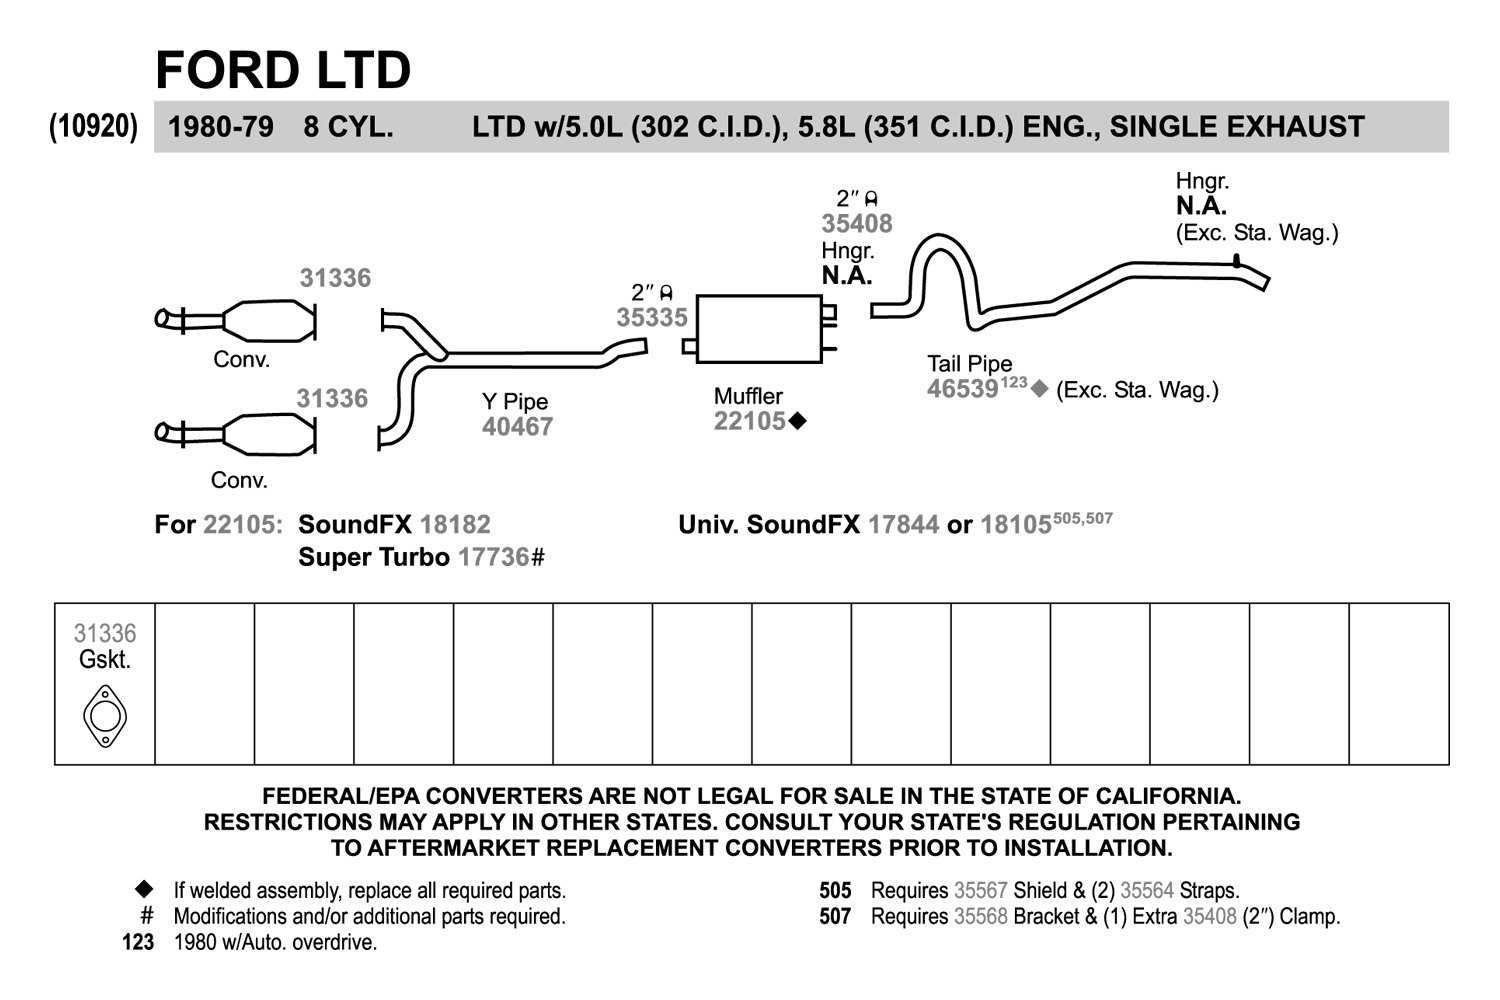 2010 Mazda 5 Wiring Diagram Start Building A 2008 6 Exhaust Trusted Rh Dafpods Co 1992 626